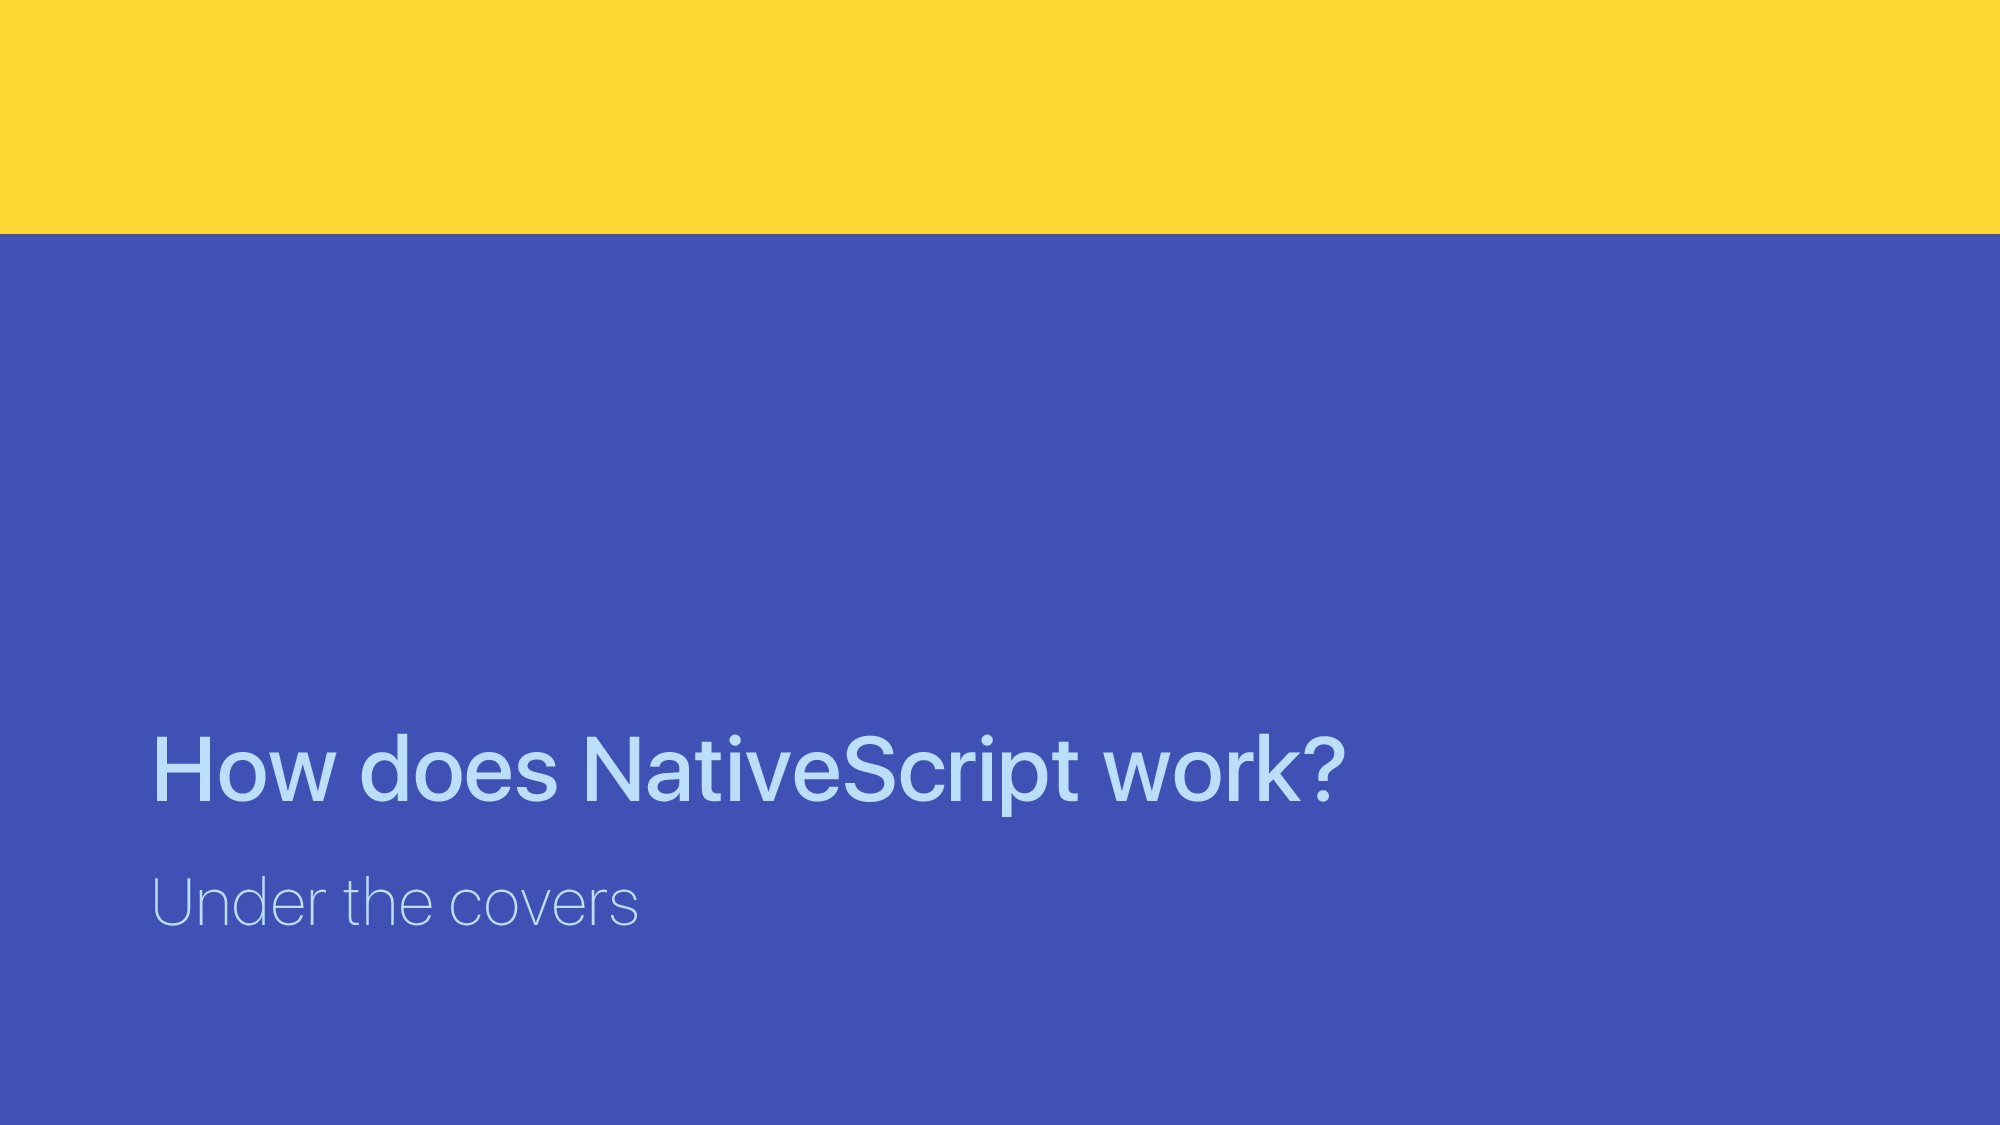 How does NativeScript work? Under the covers